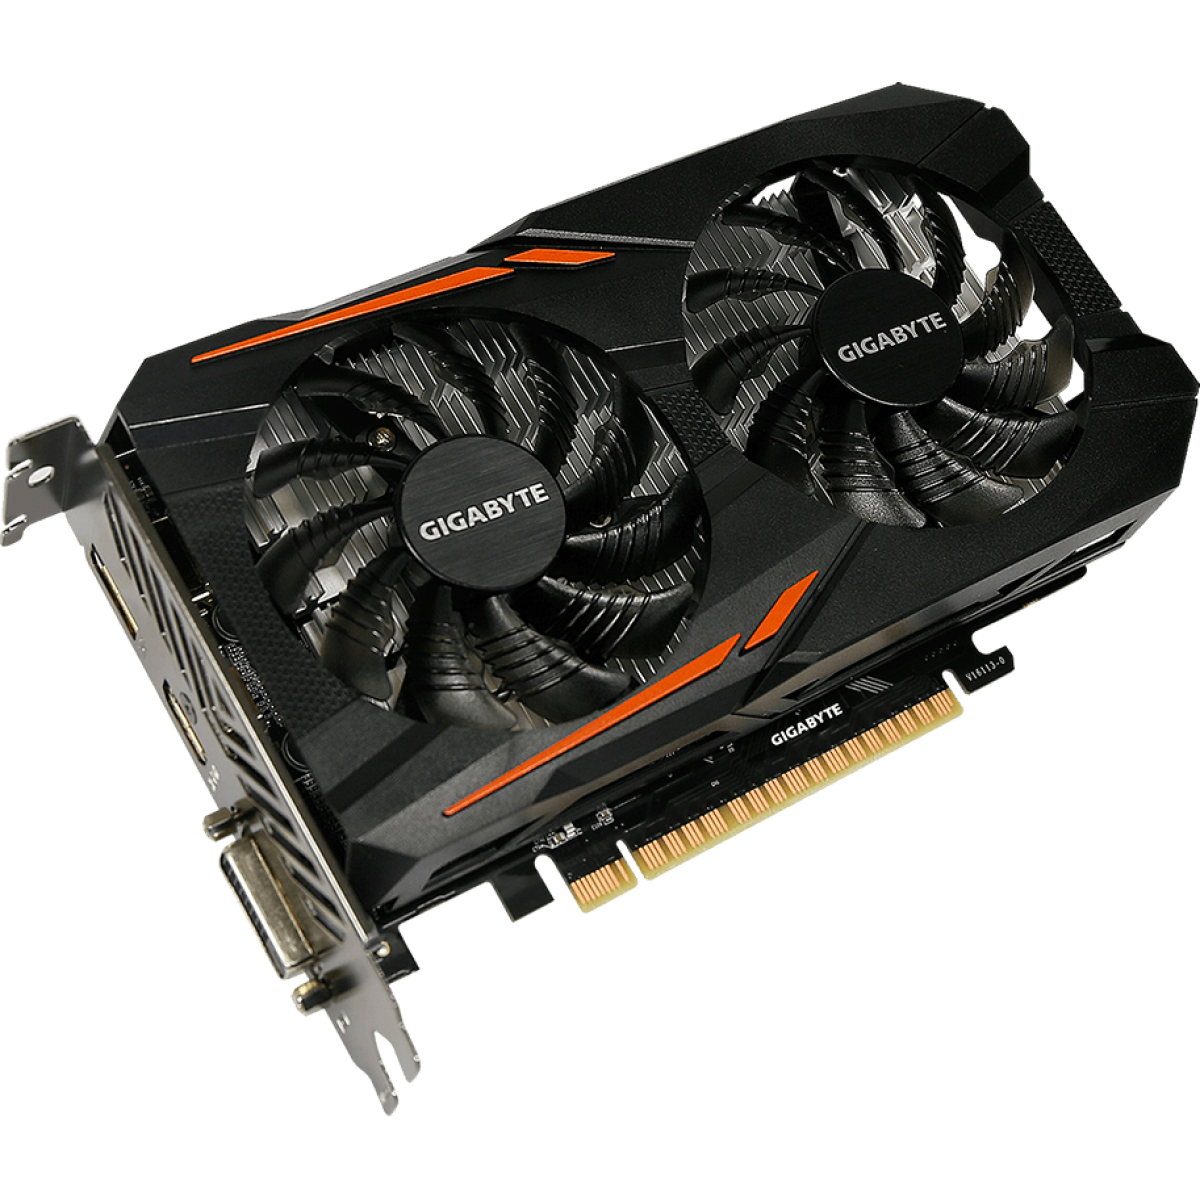 Placa de Vídeo Gigabyte GeForce GTX 1050 Ti OC DUAL FAN 4GB GV-N105TOC-4GD GDDR5 PCI-EXP